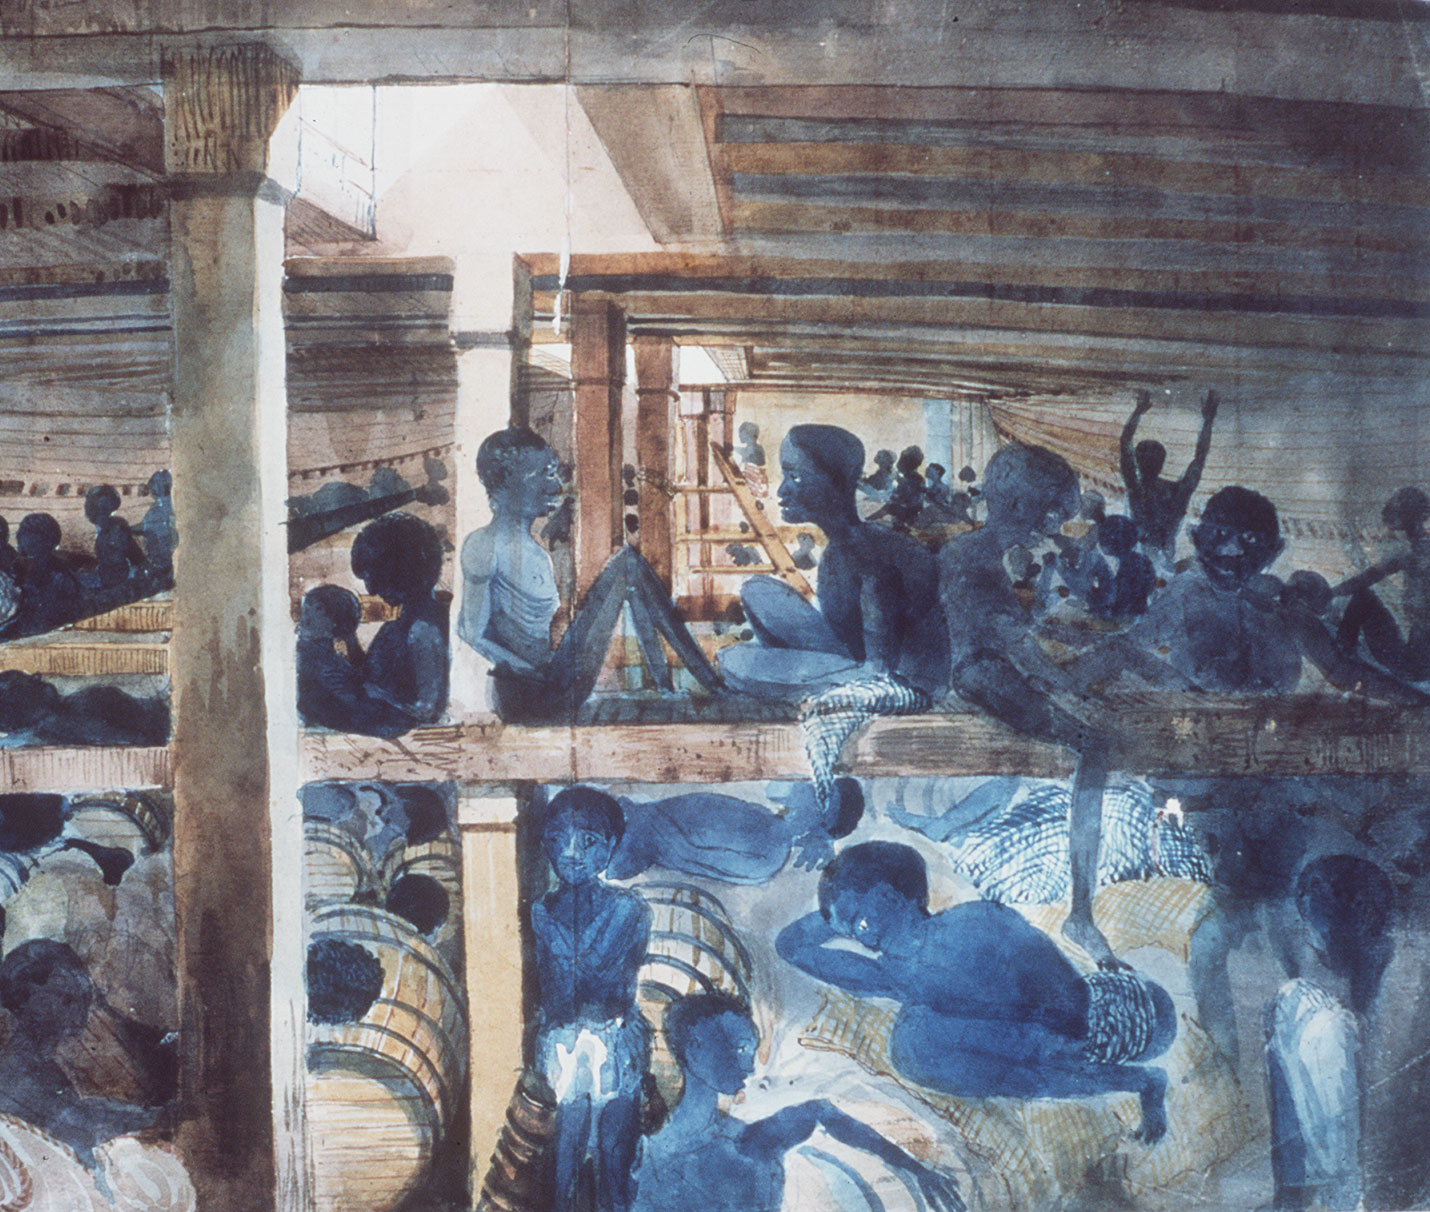 Caption: This pencil and watercolor by Lt. Francis Meynell shows Africans liberated by the British Navy. The Albanez (erroneously identified as Albaroz in the National Maritime Museum catalog) was a Brazilian vessel, captured by the Royal Navy ship, Albatross, off, Credit: Image is in the public domain. Creative Commons Attribution Non-Commercial 4.0 International.